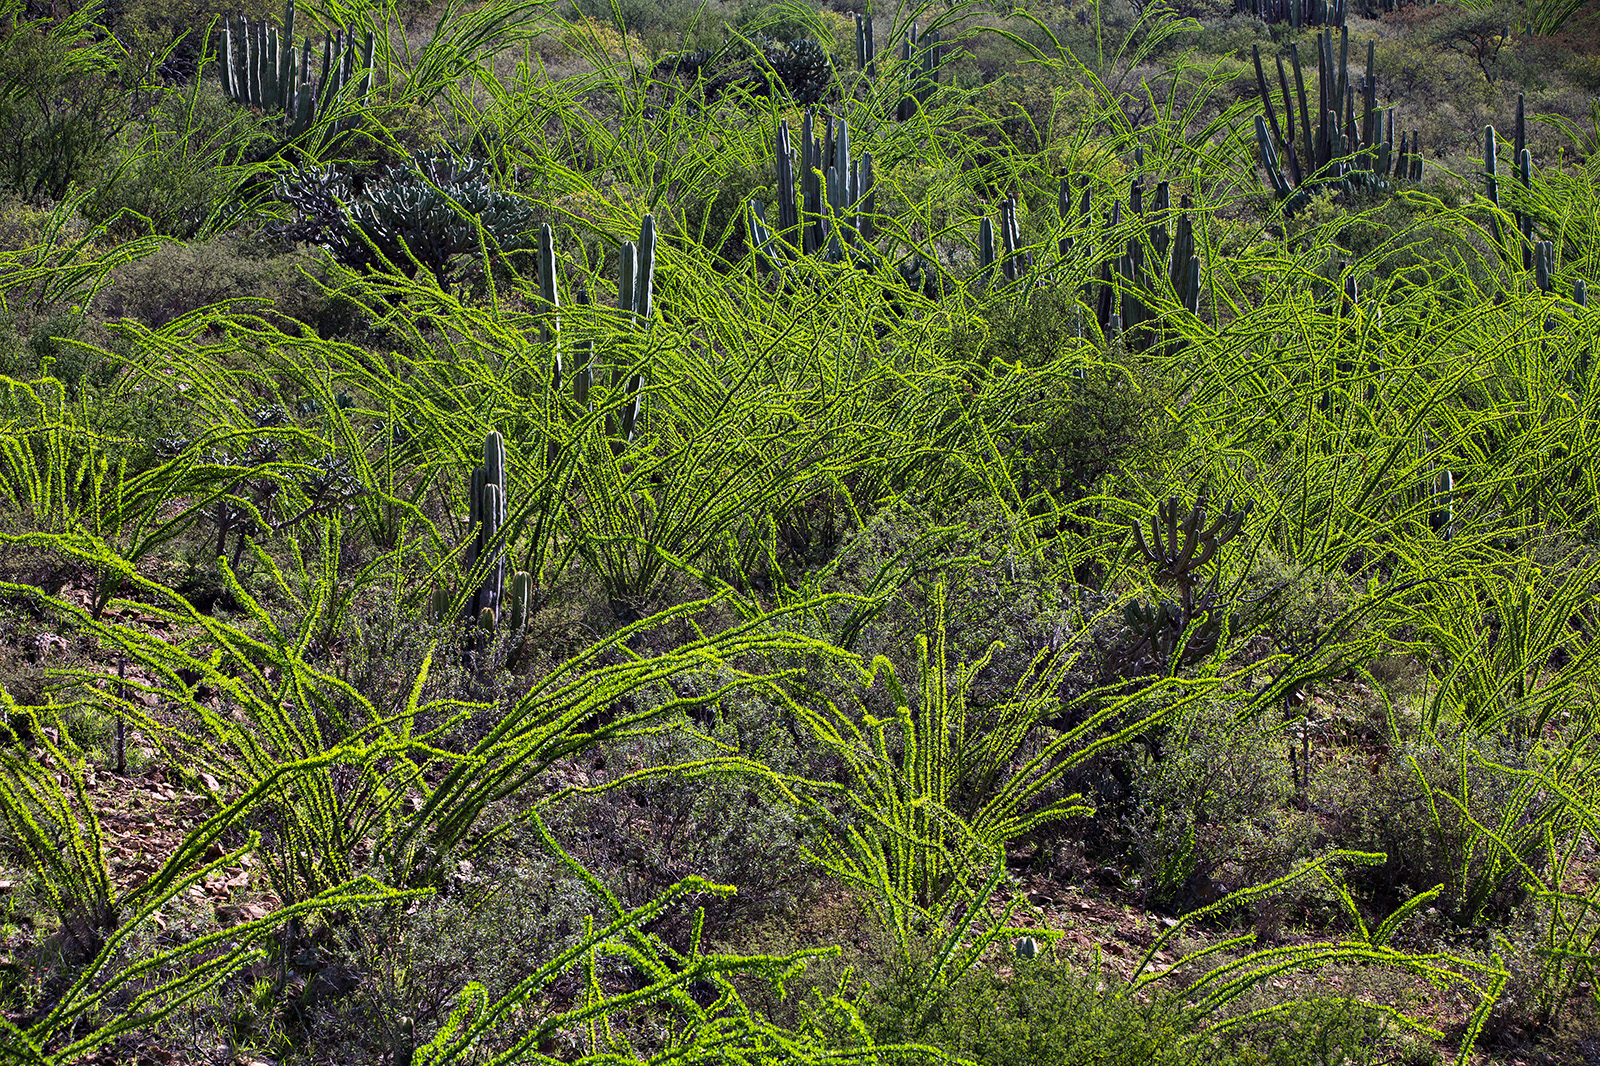 Glowing foliage of <i>Fouquieria splendens</i>